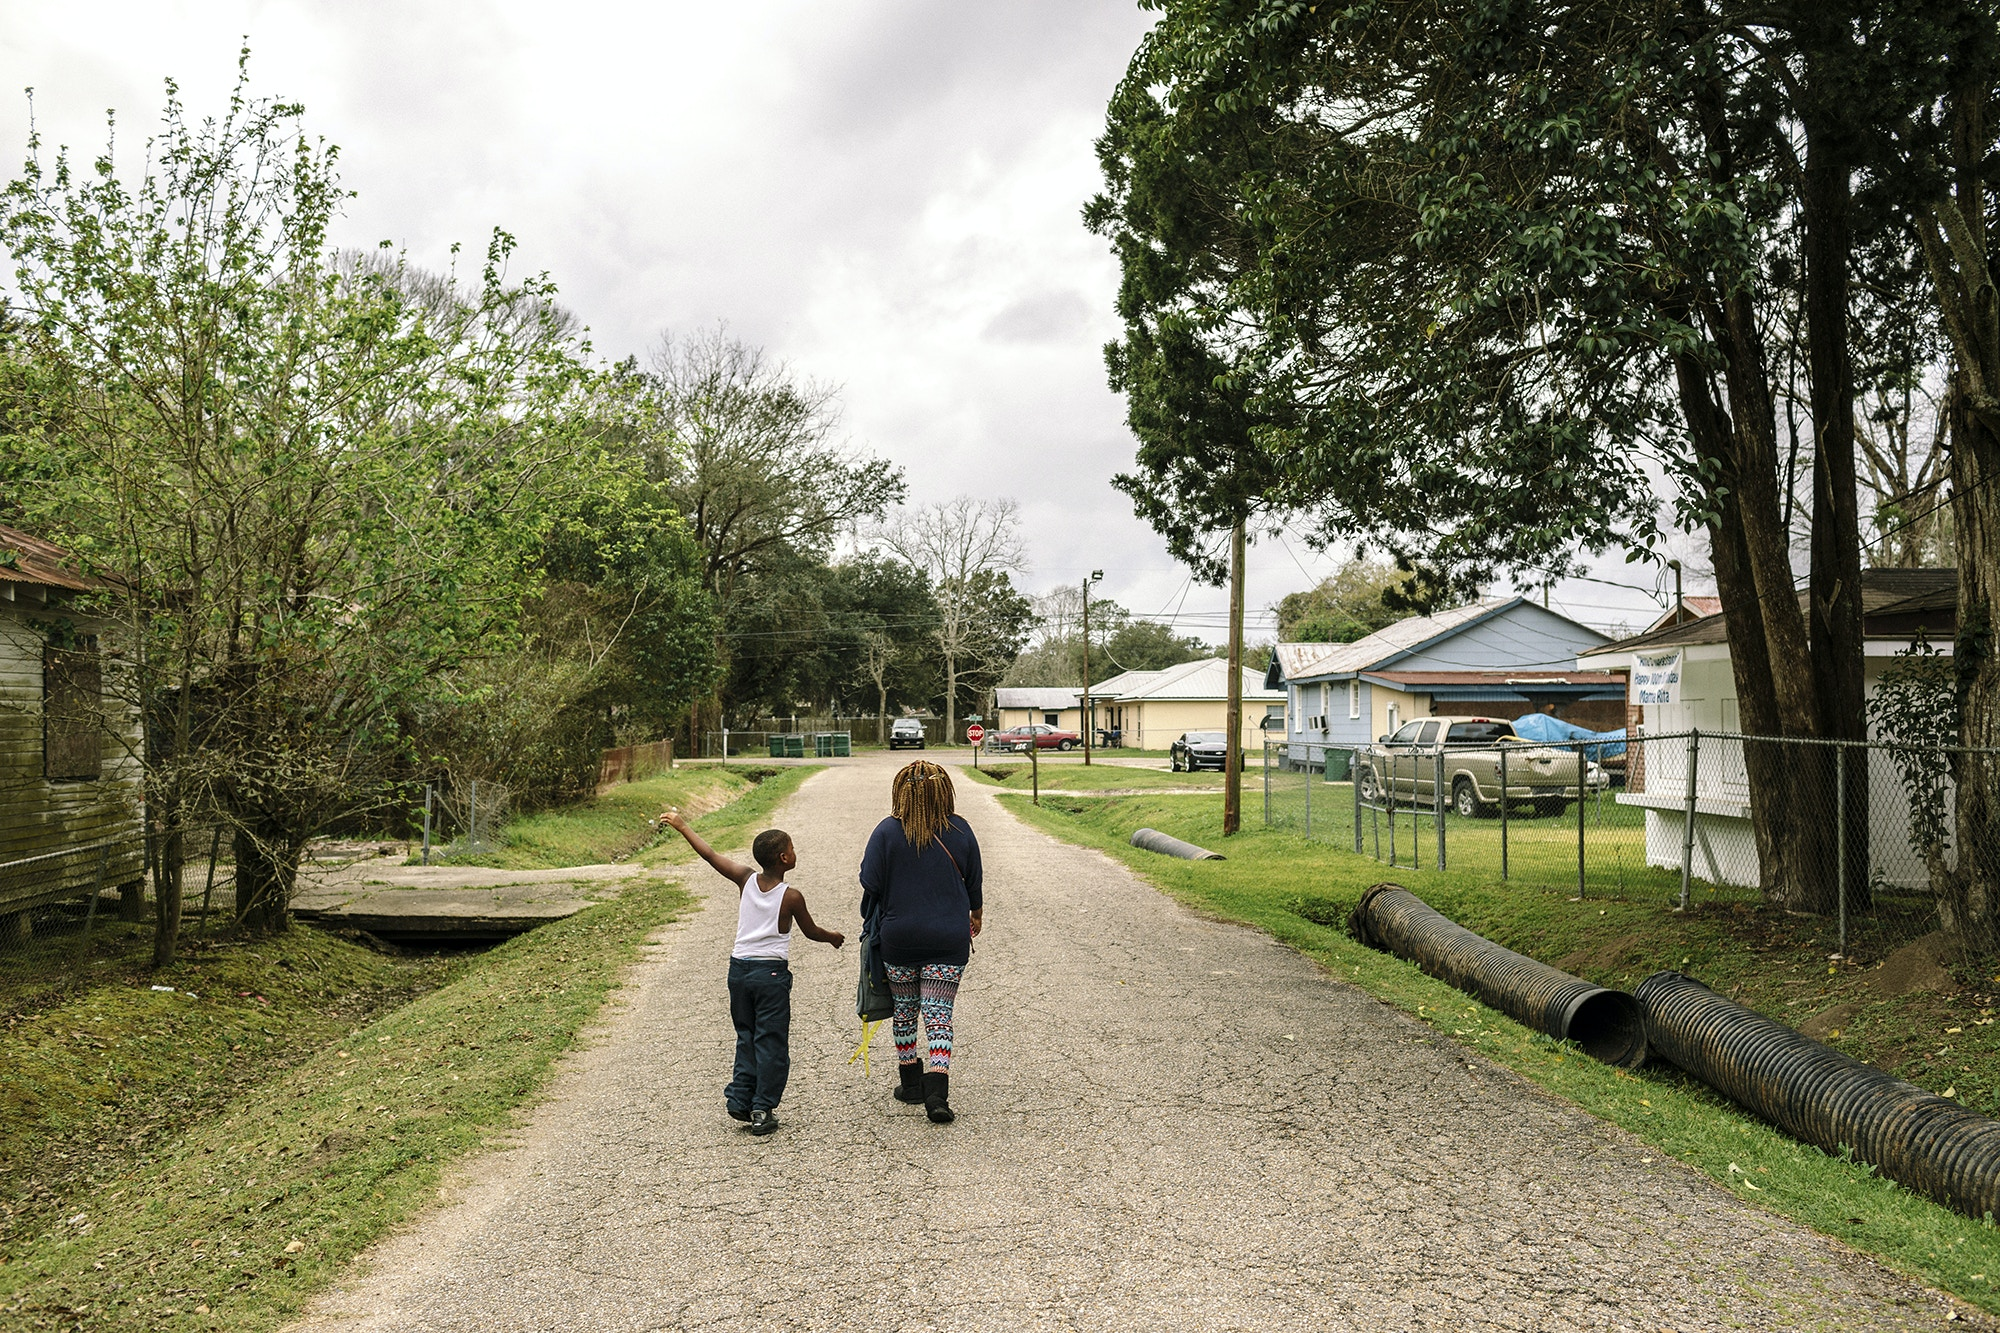 Reserve, LA - Feb 20, 2017 - A young boy walks home from school along Robinet Drive, one block from the fenceline of the Dupont/Denka plant.